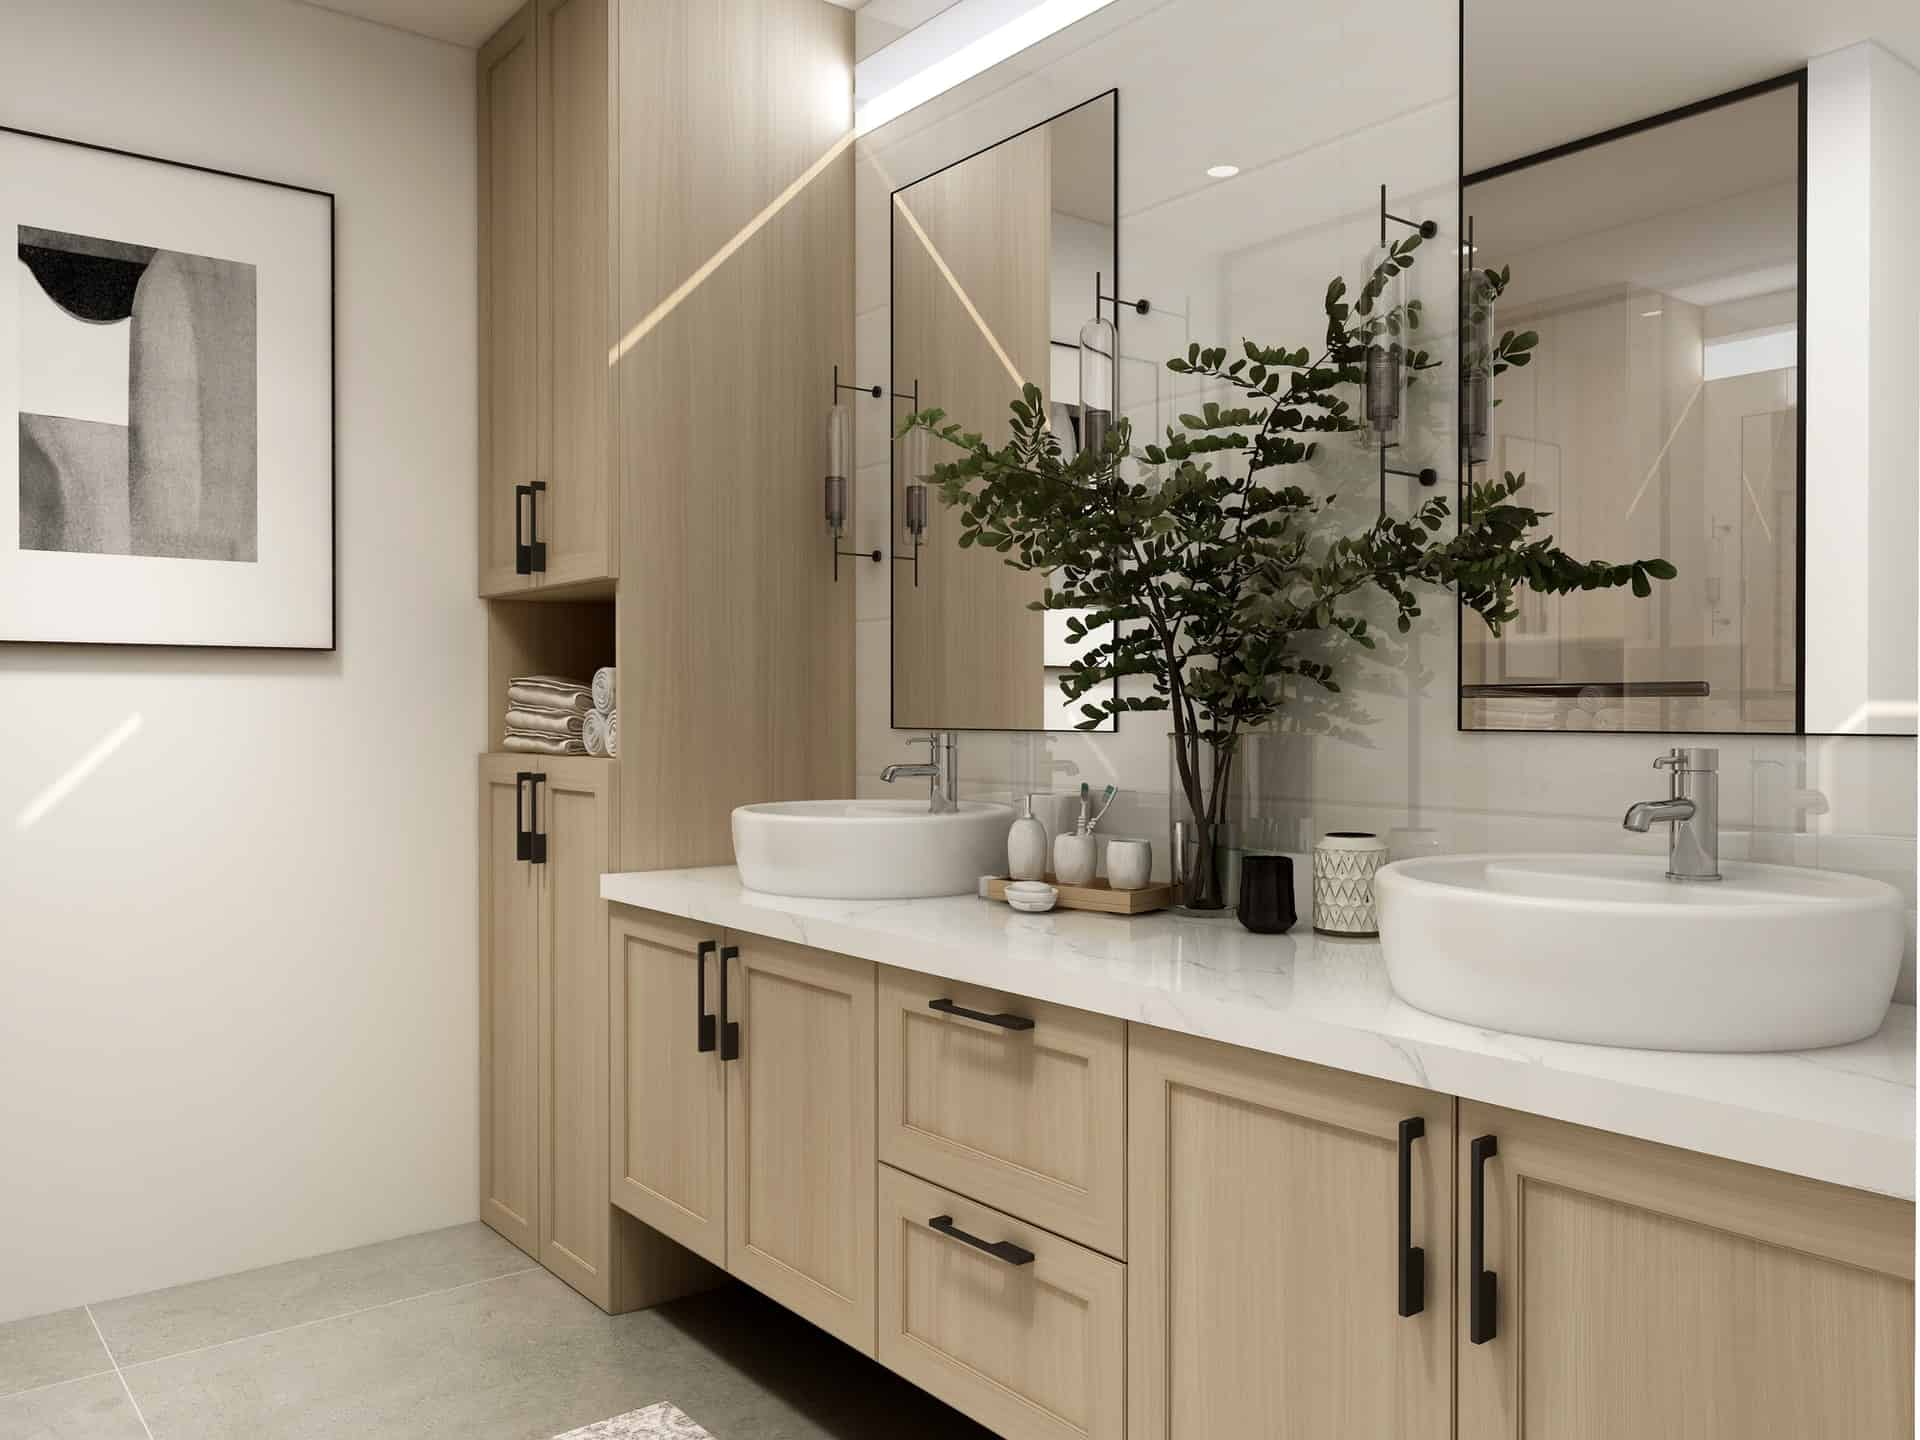 Two touchless faucets in a modern white and wooden bathroom